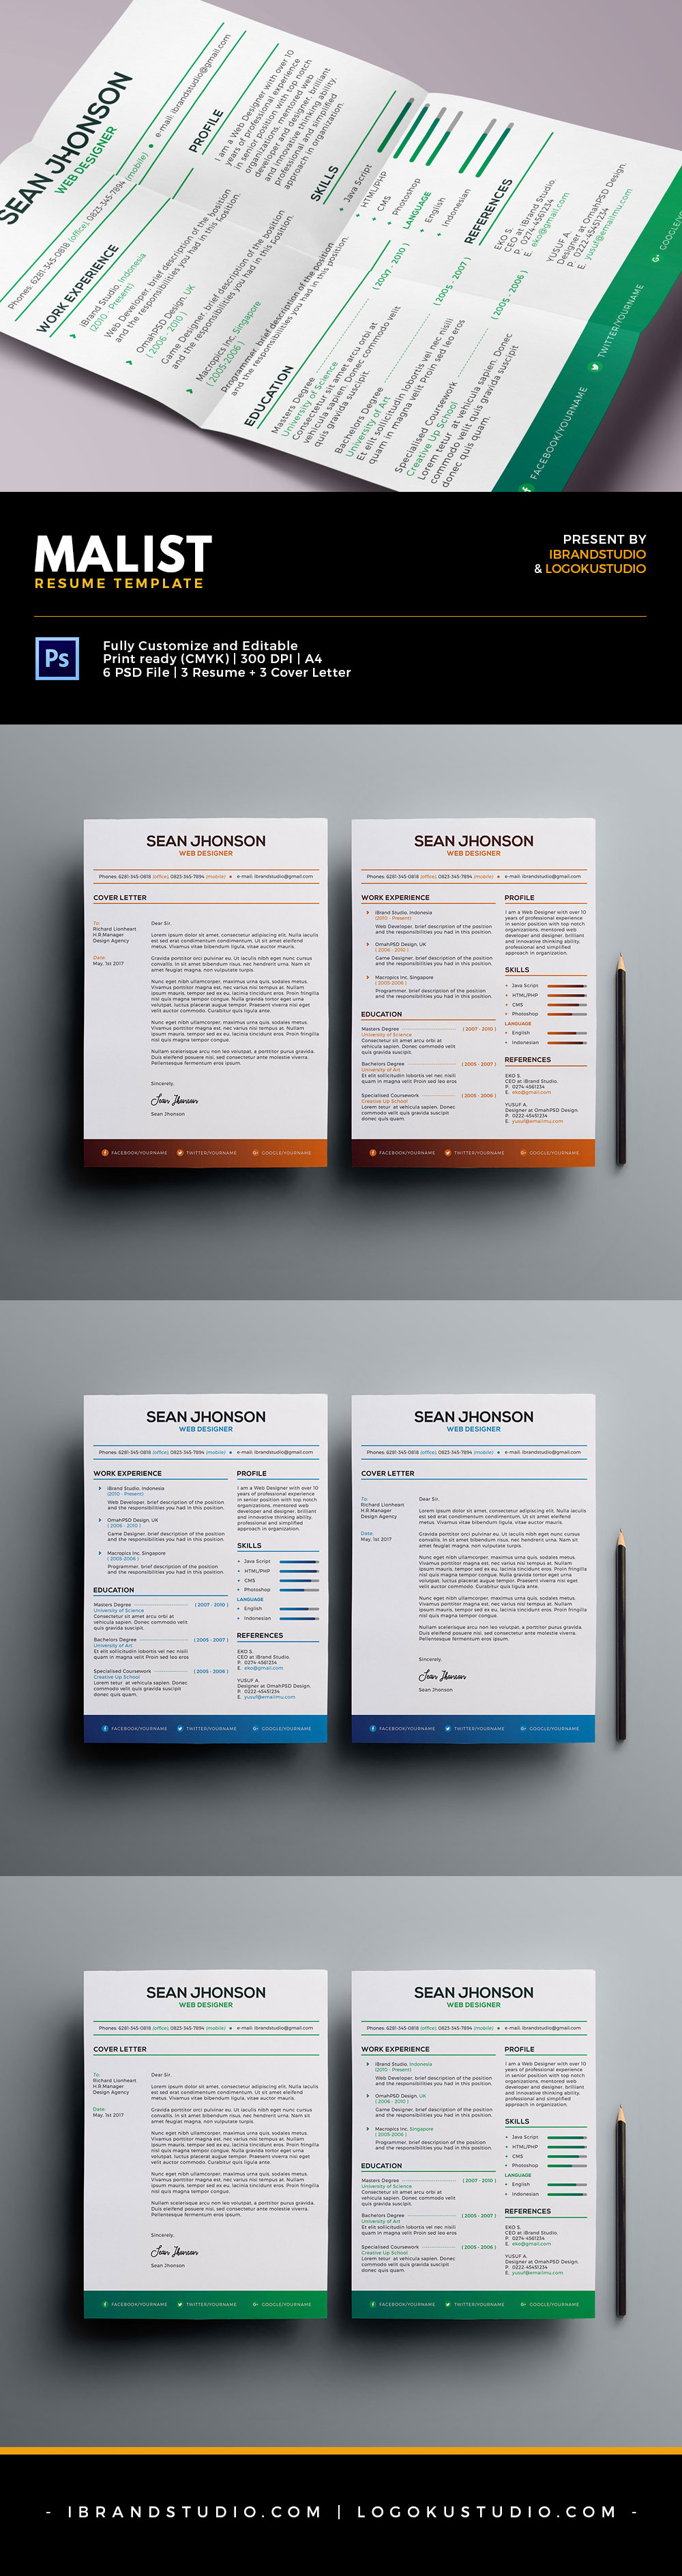 Malist Resume Template and Cover Letter